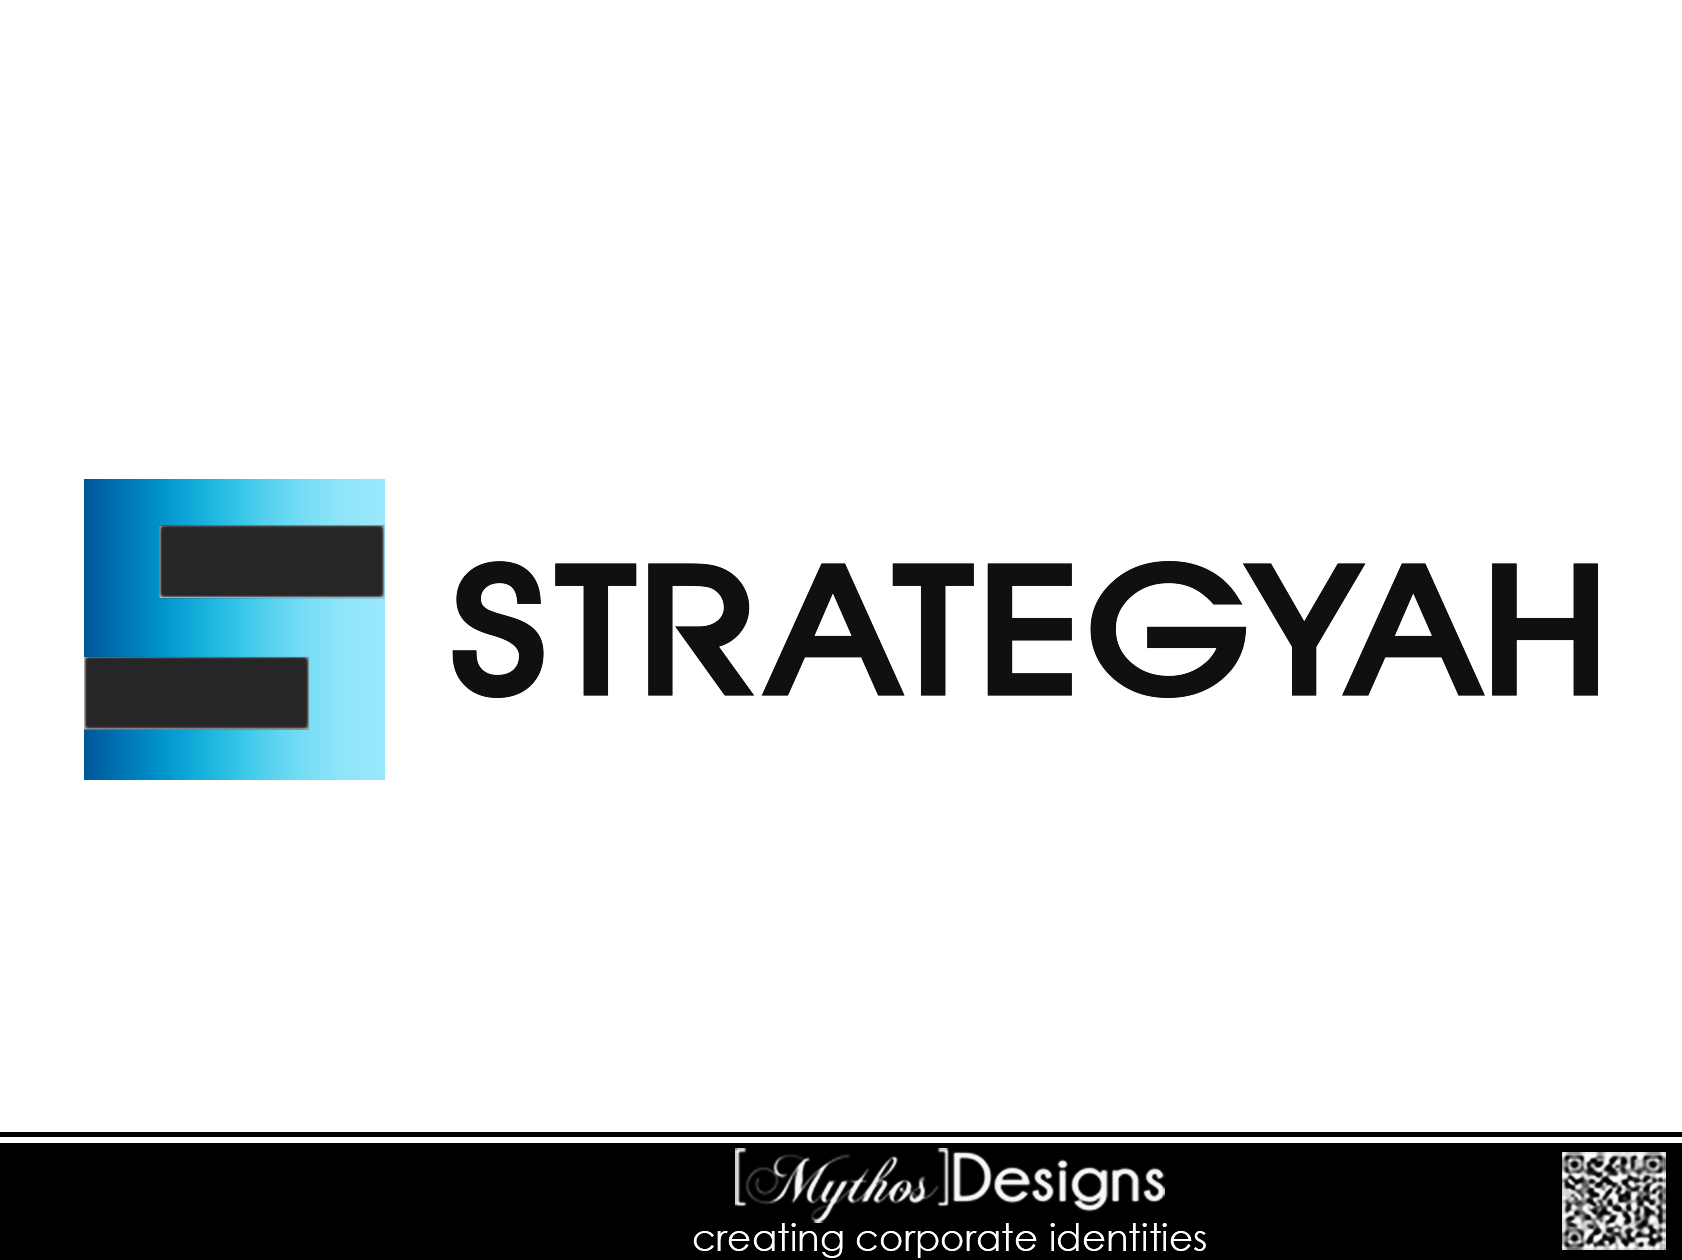 Logo Design by Mythos Designs - Entry No. 247 in the Logo Design Contest Creative Logo Design for Strategyah.